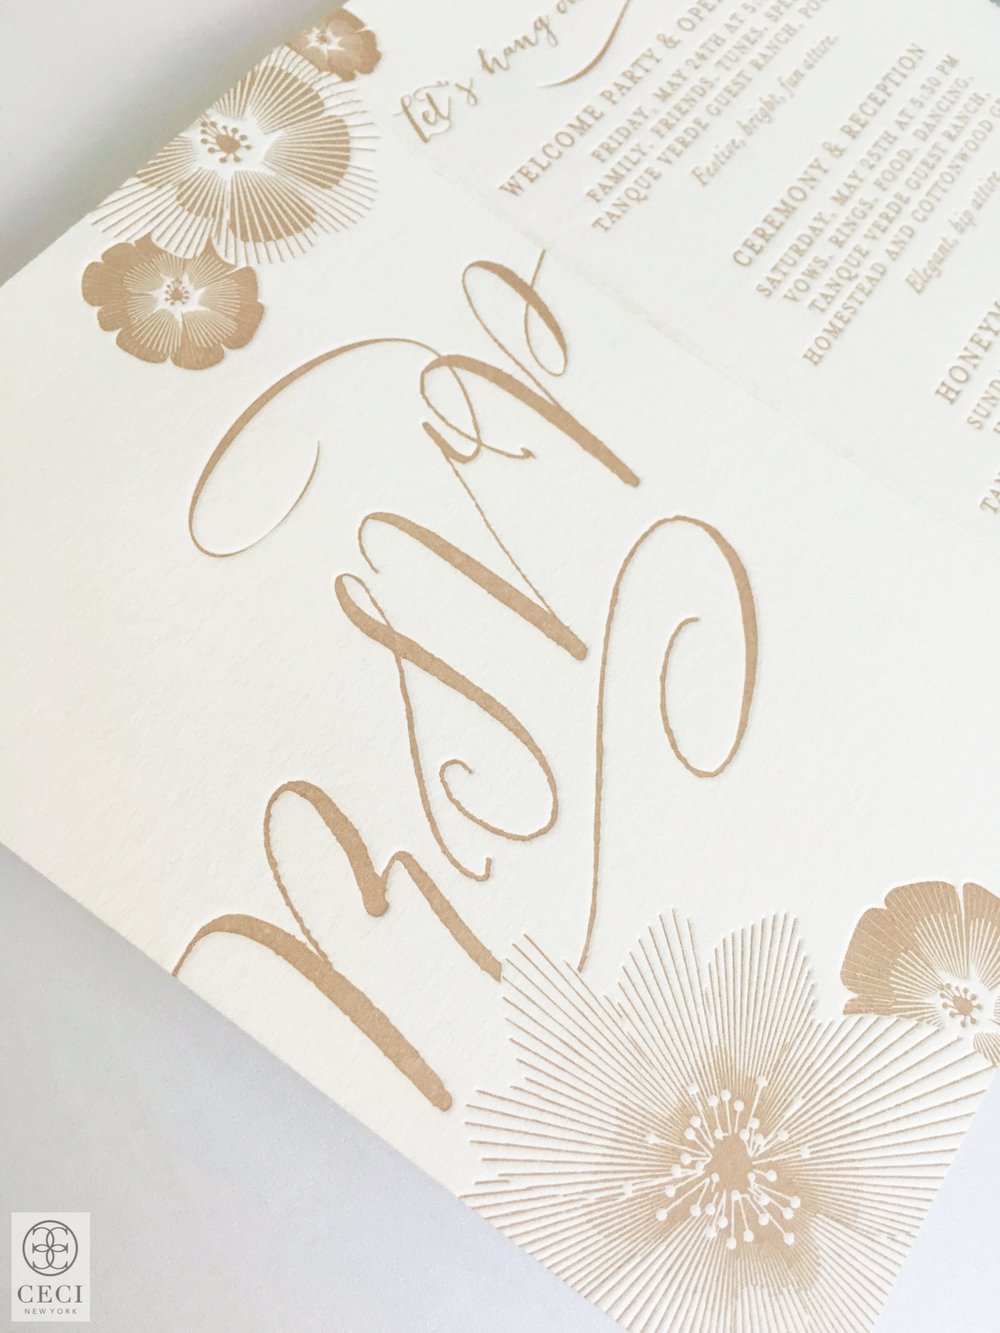 Ceci_New_York_Ceci_Style_Ceci_Johnson_Luxury_Lifestyle_Arizona_Wedding_Watercolor_Inspiration_Design_Custom_Couture_Personalized_Invitations_-10.jpg